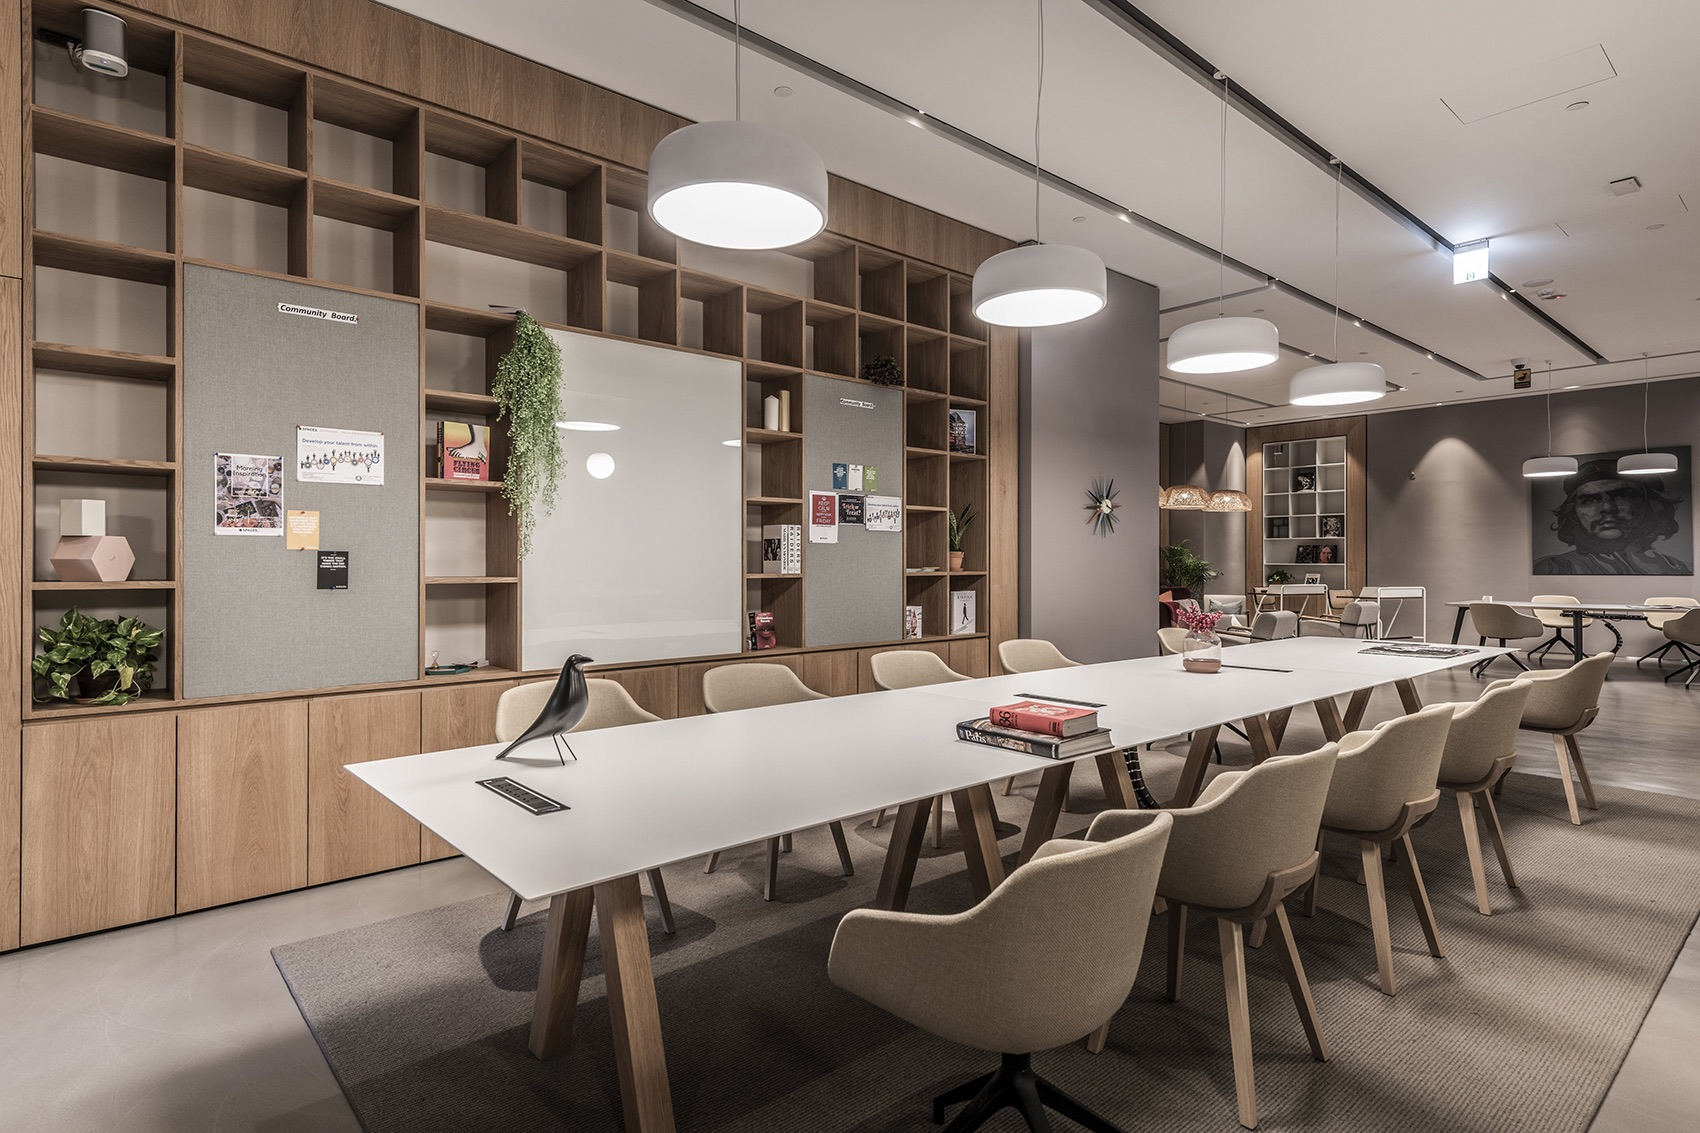 spaces-coworking-taiwan-11